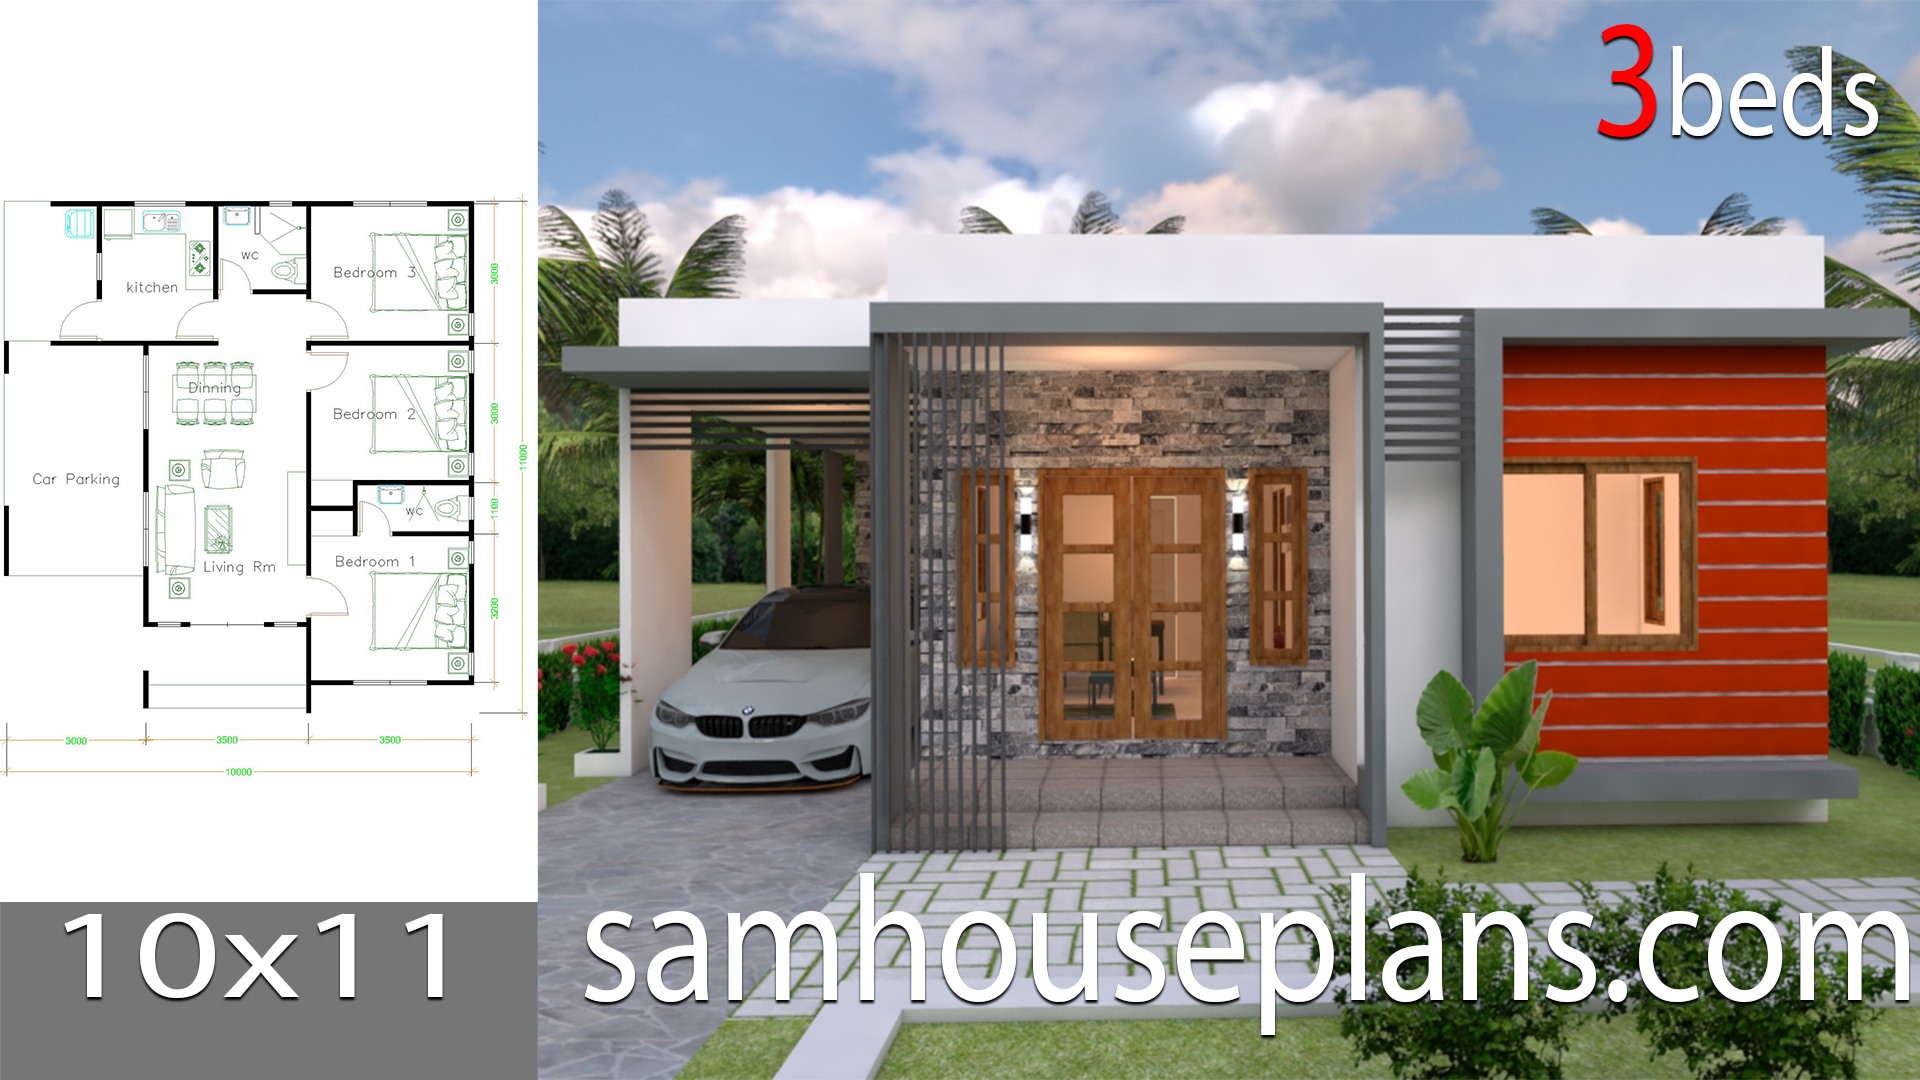 House Plans 10x11 with 3 Bedrooms - Sam House Plans